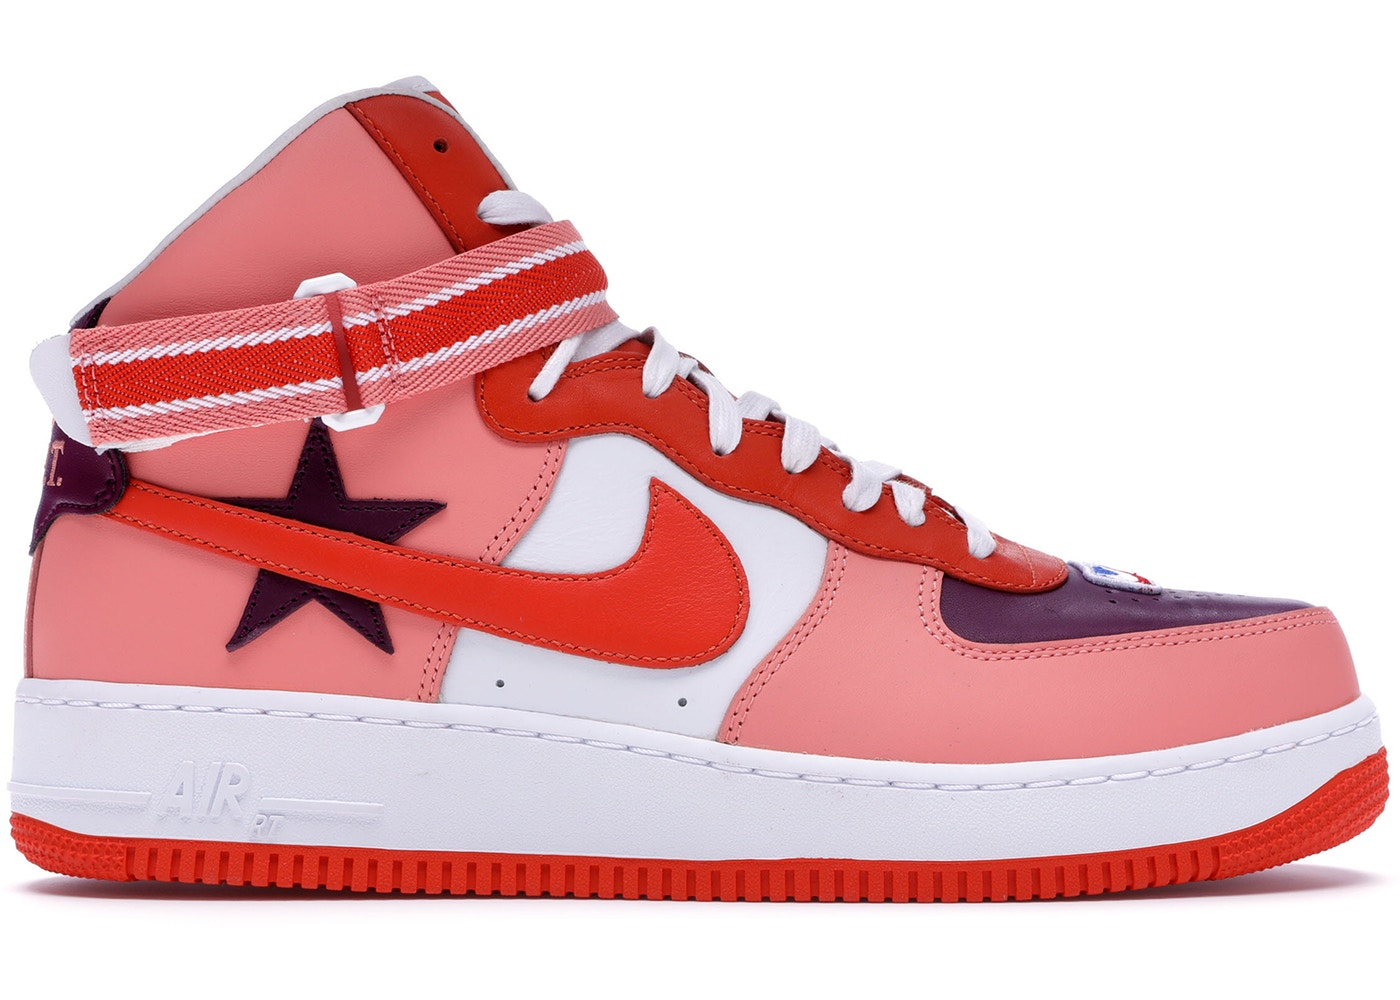 timeless design fddb2 1117e Buy Nike Air Force 1 Shoes   Deadstock Sneakers